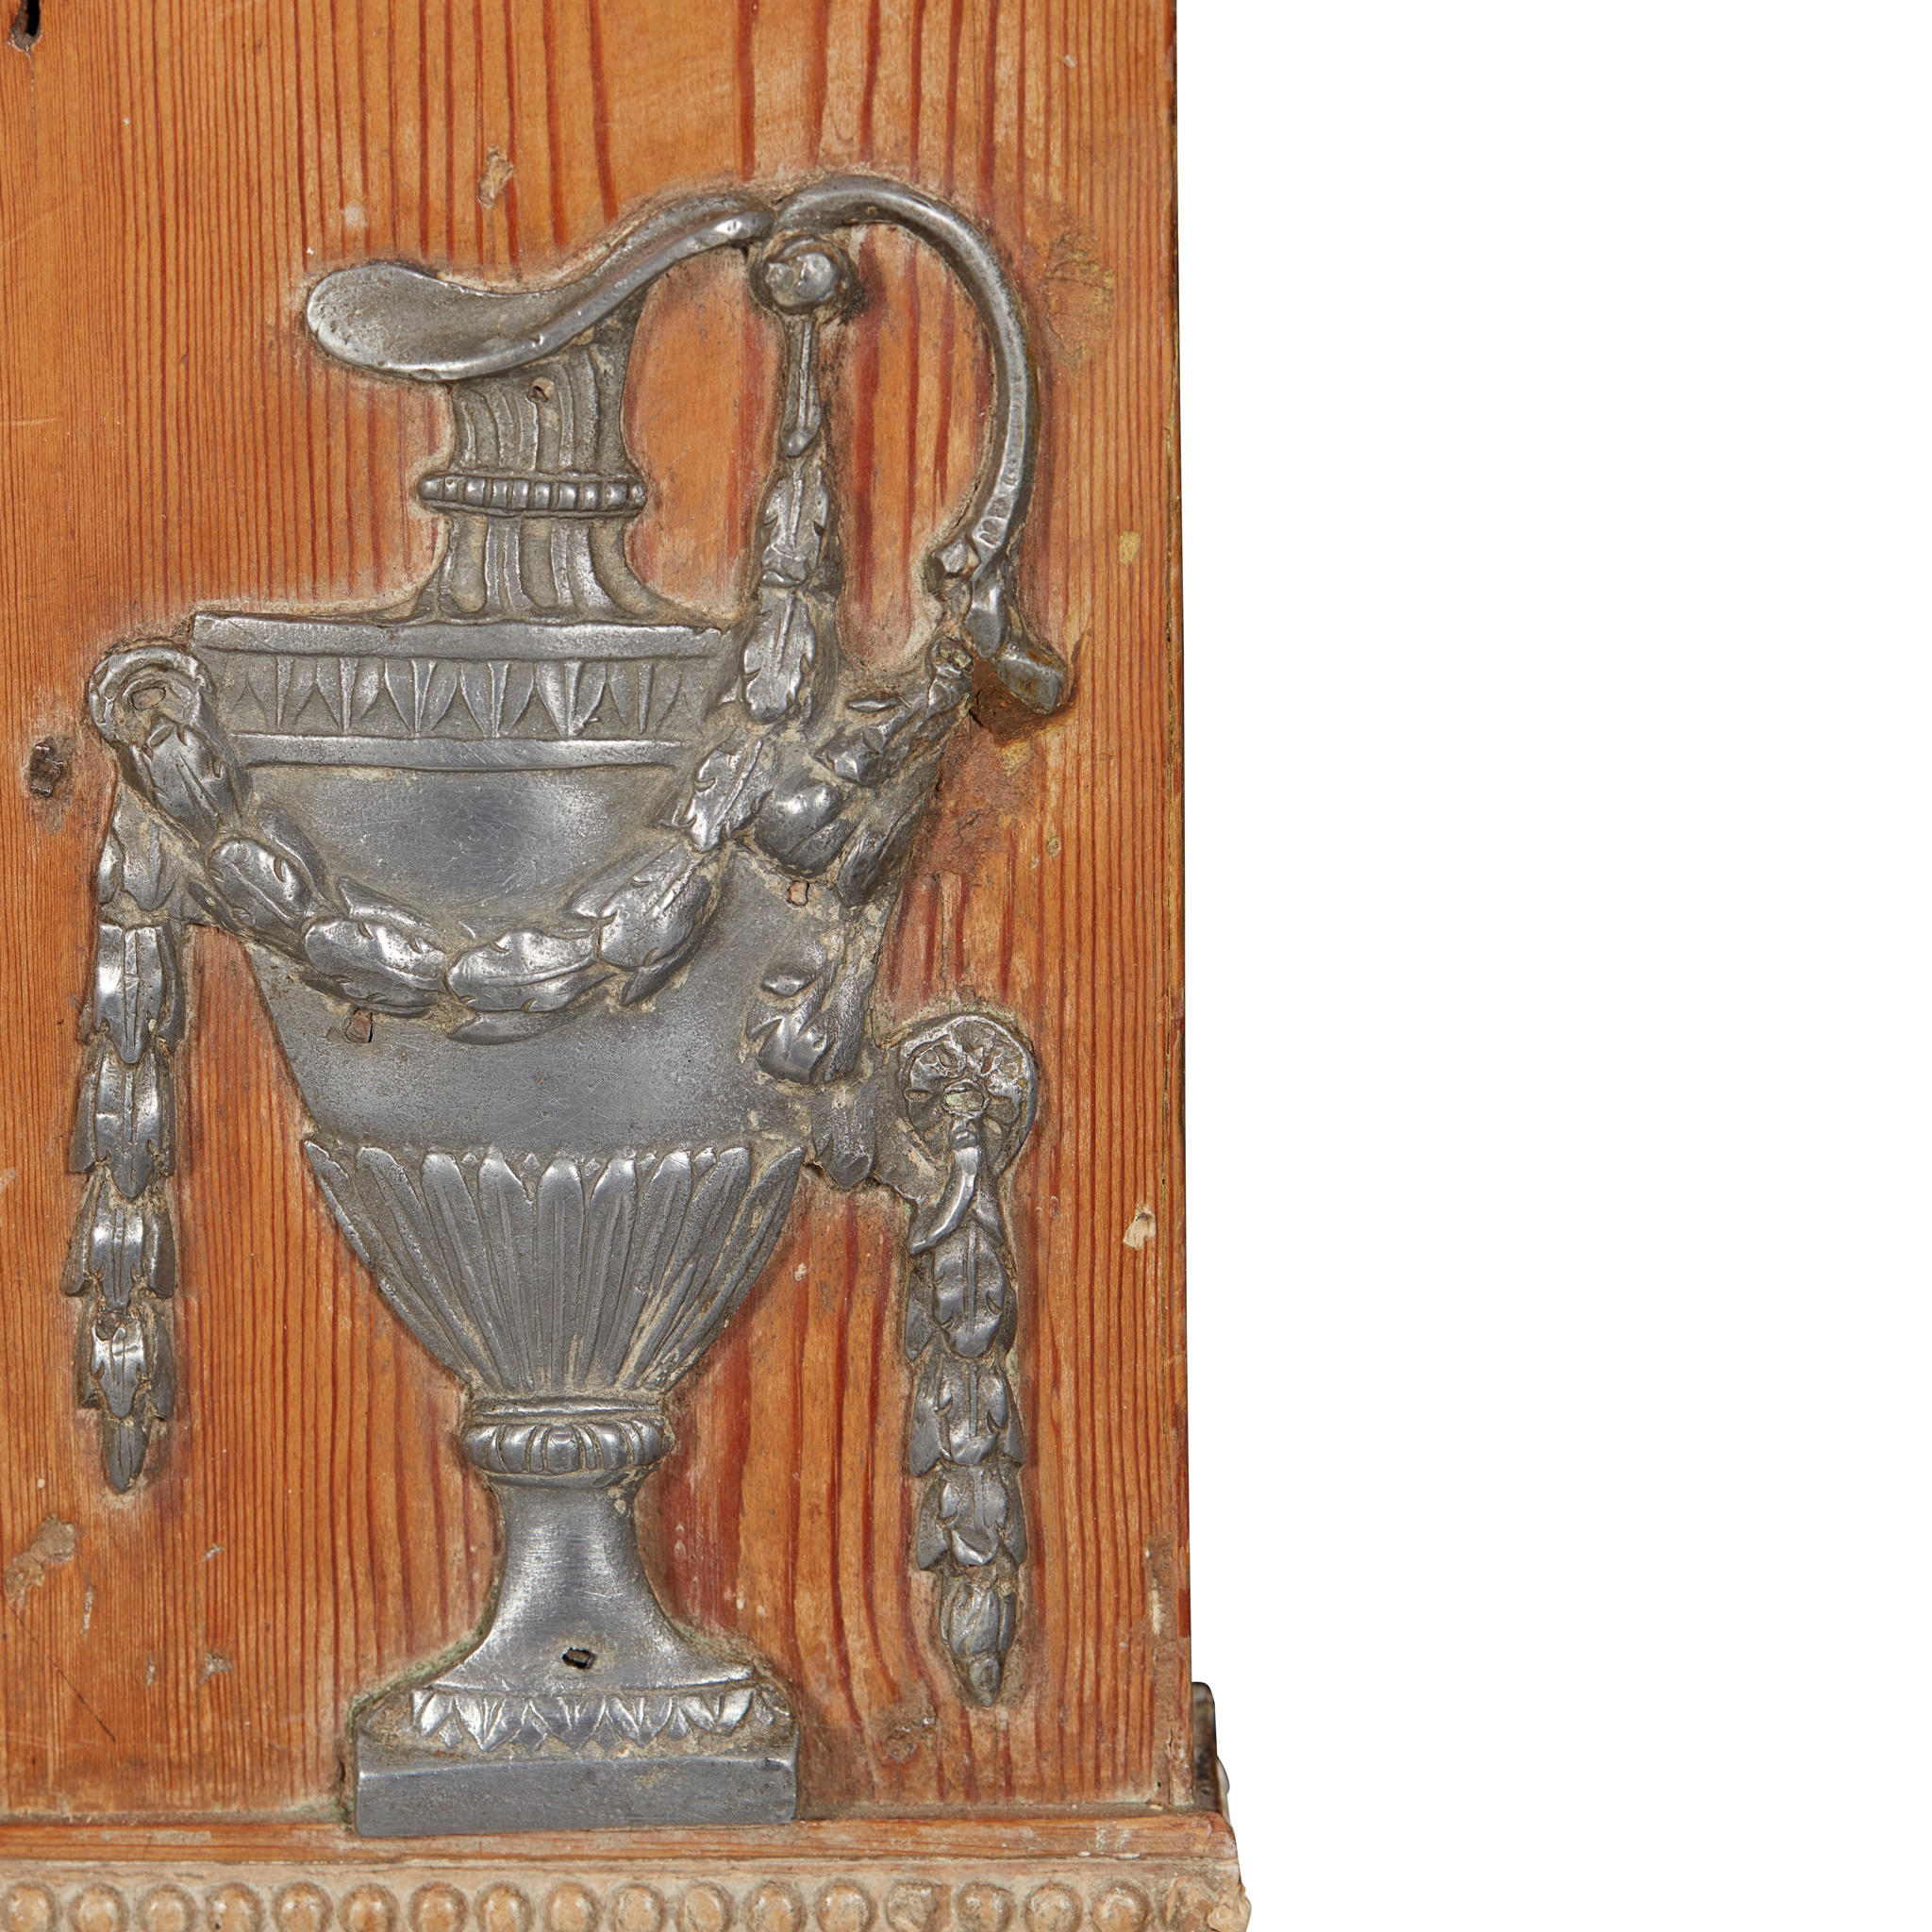 RARE GEORGE III PEWTER AND GESSO MOUNTED FIRE SURROUND 18TH CENTURY - Image 3 of 7